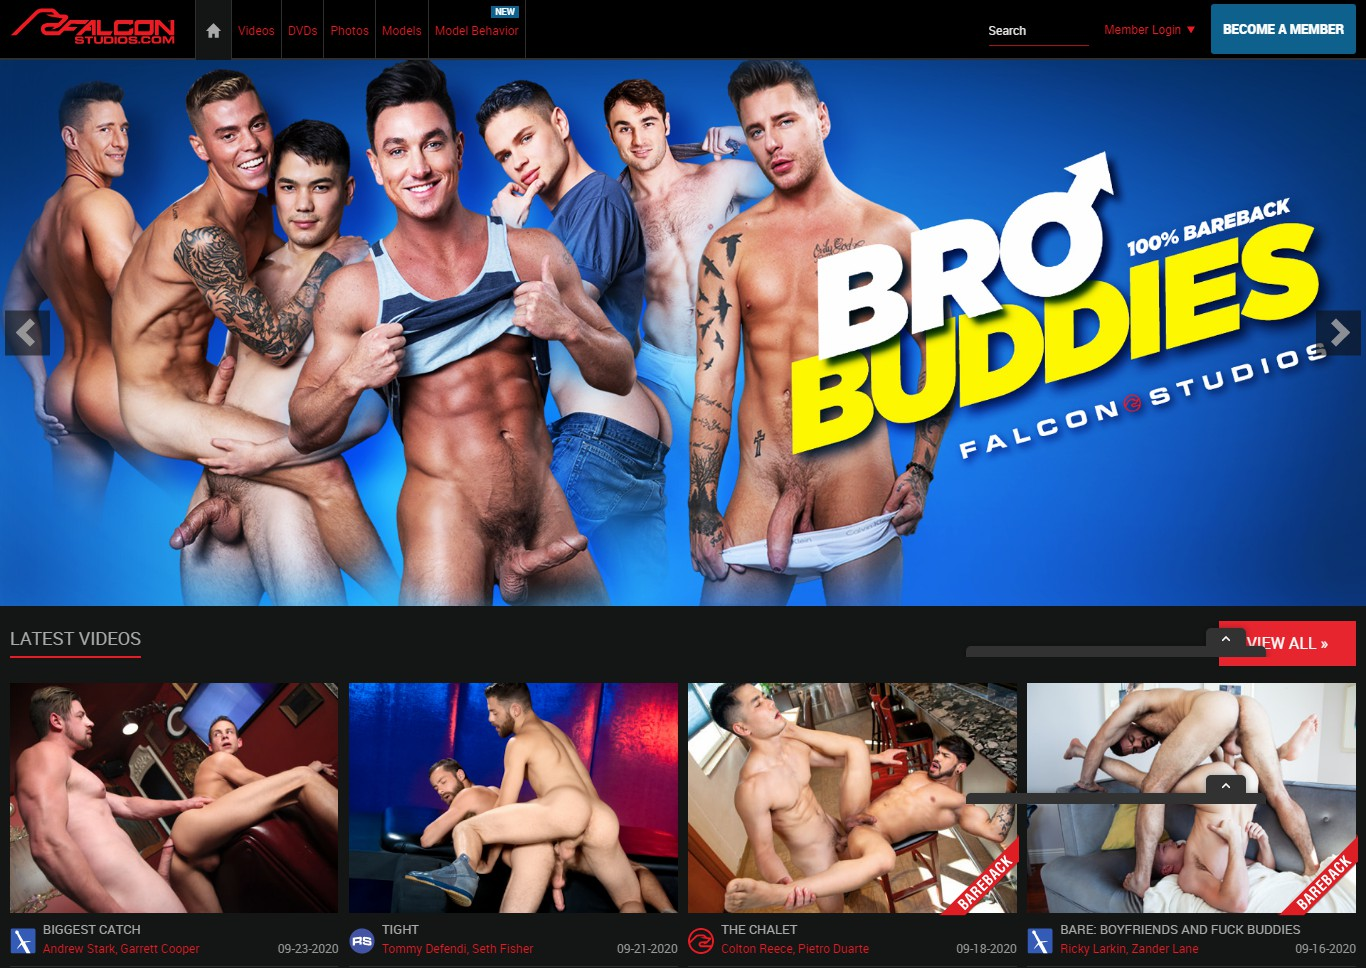 FalconStudios - Premium Gay Porn Sites